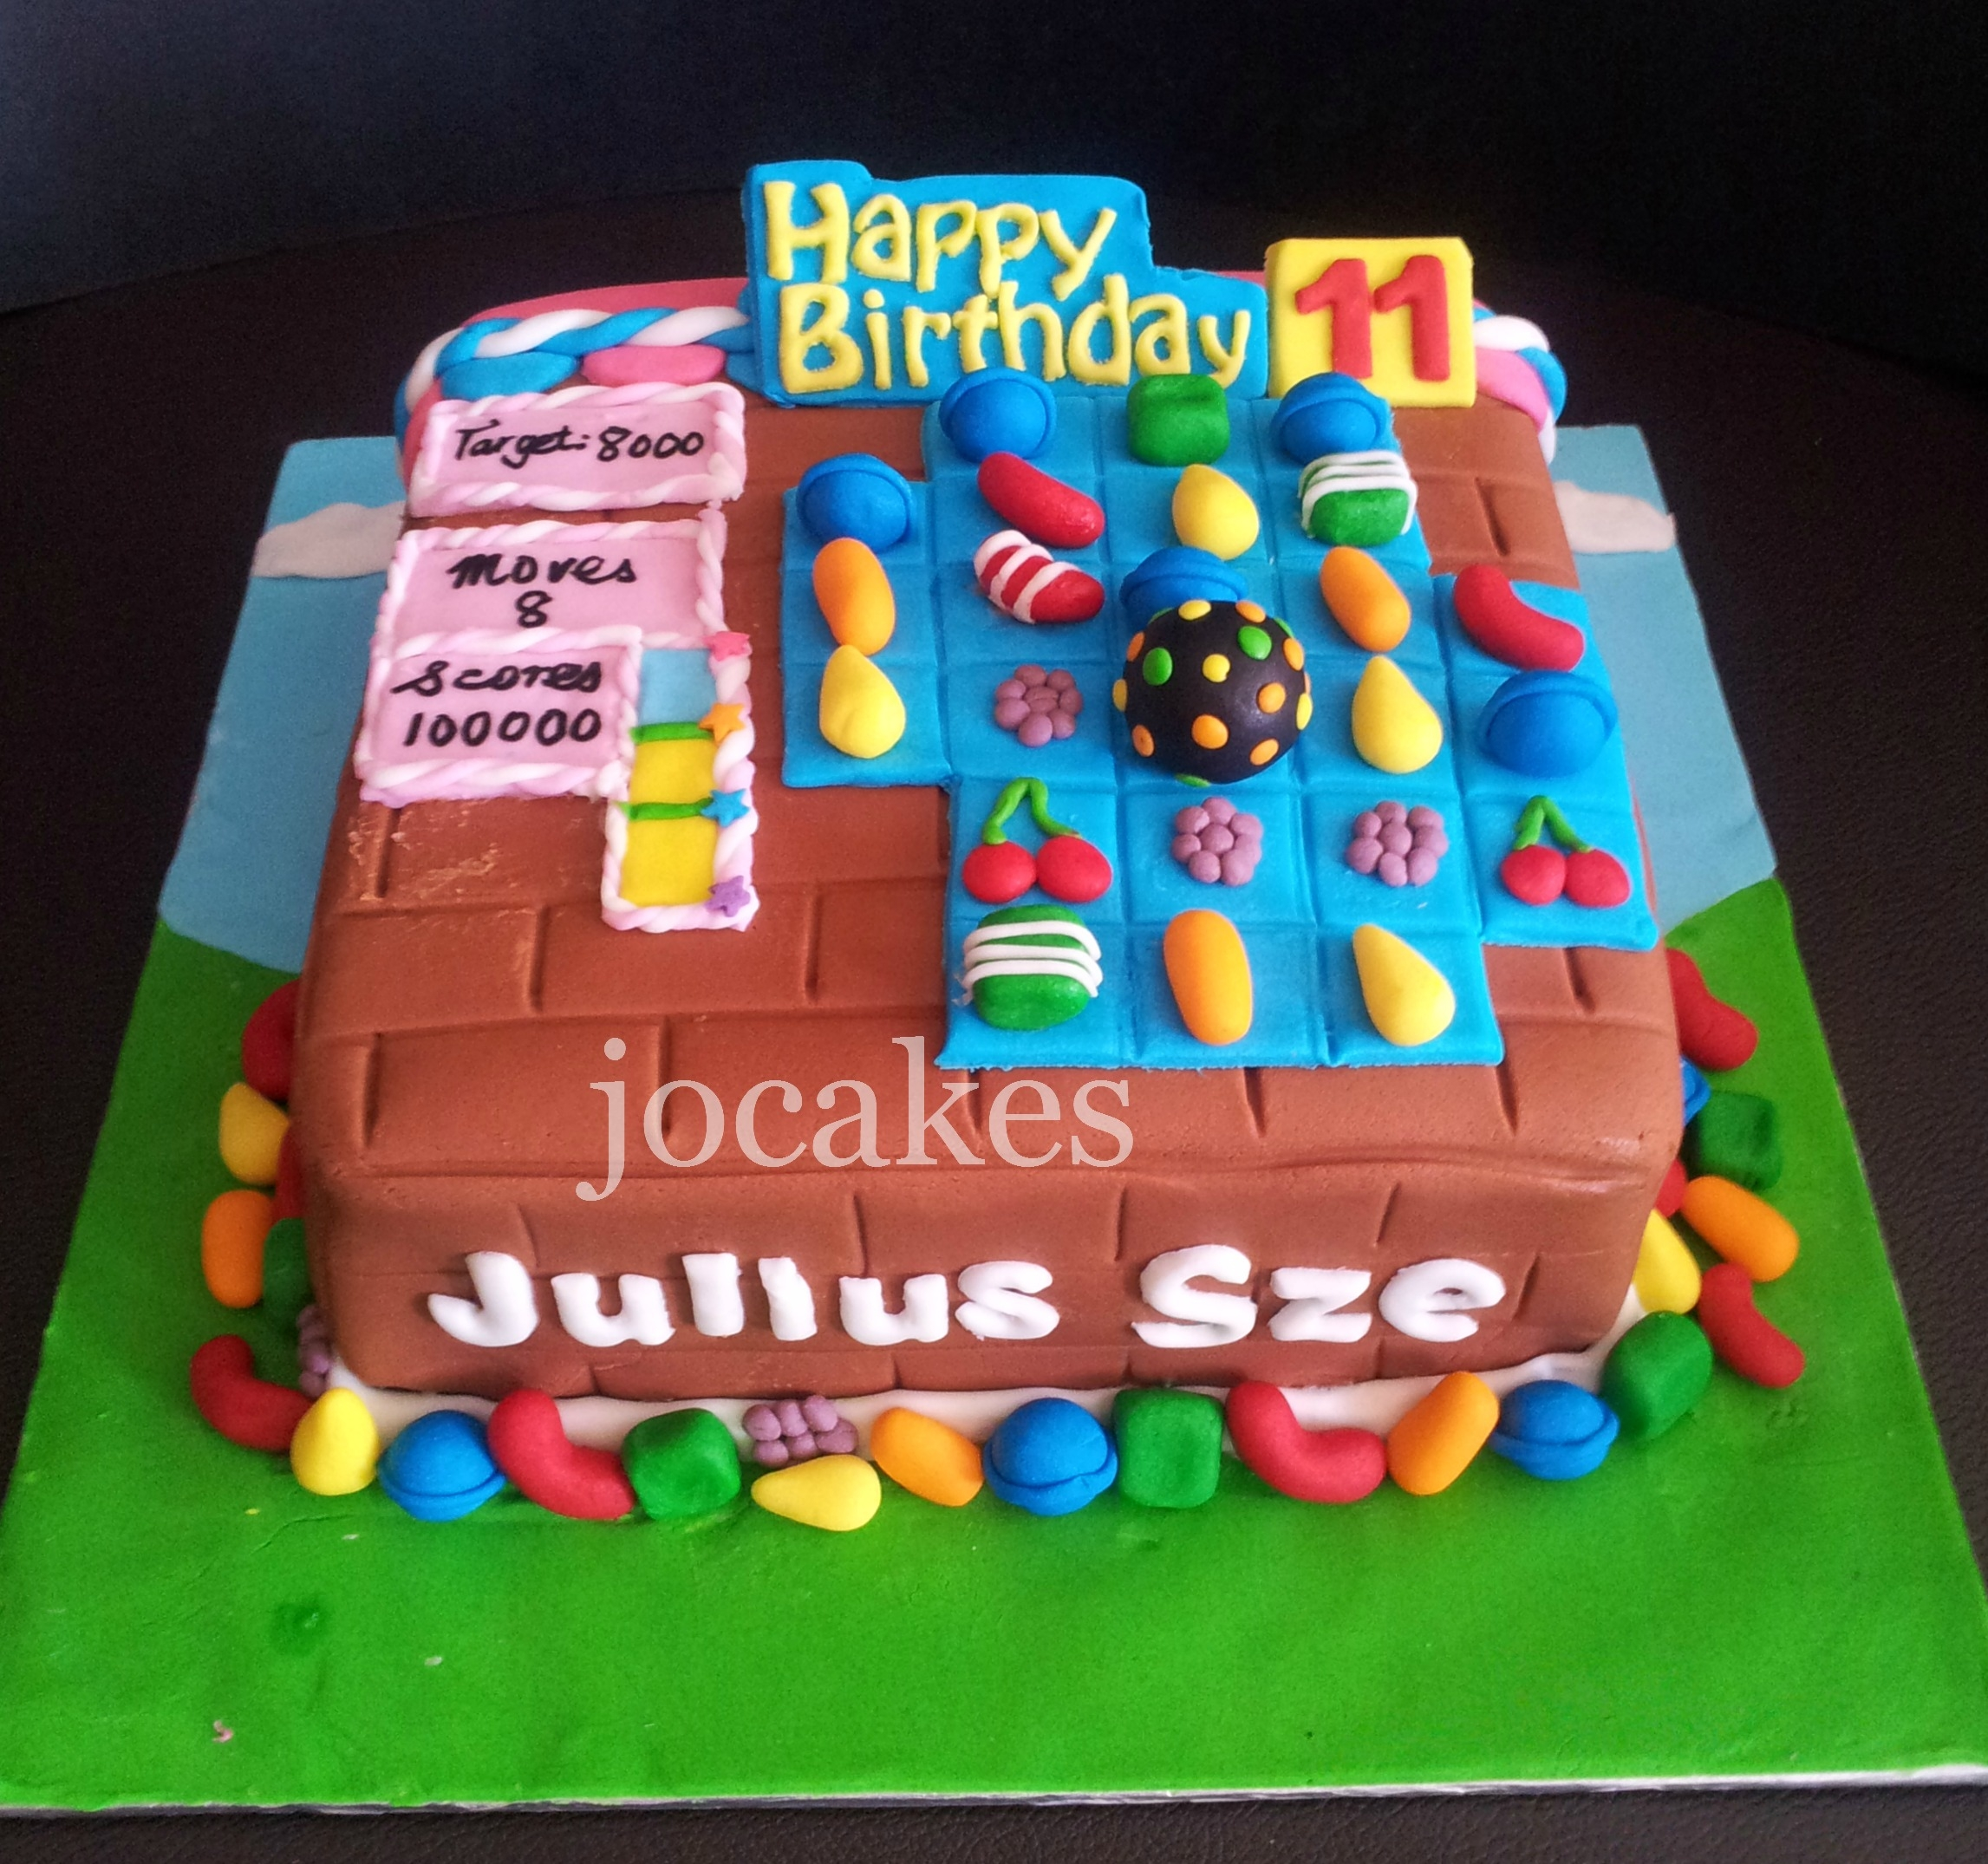 11 year old birthday cake design ; birthday-cake-ideas-11-year-old-boy-inside-birthday-cake-ideas-11-year-old-boy